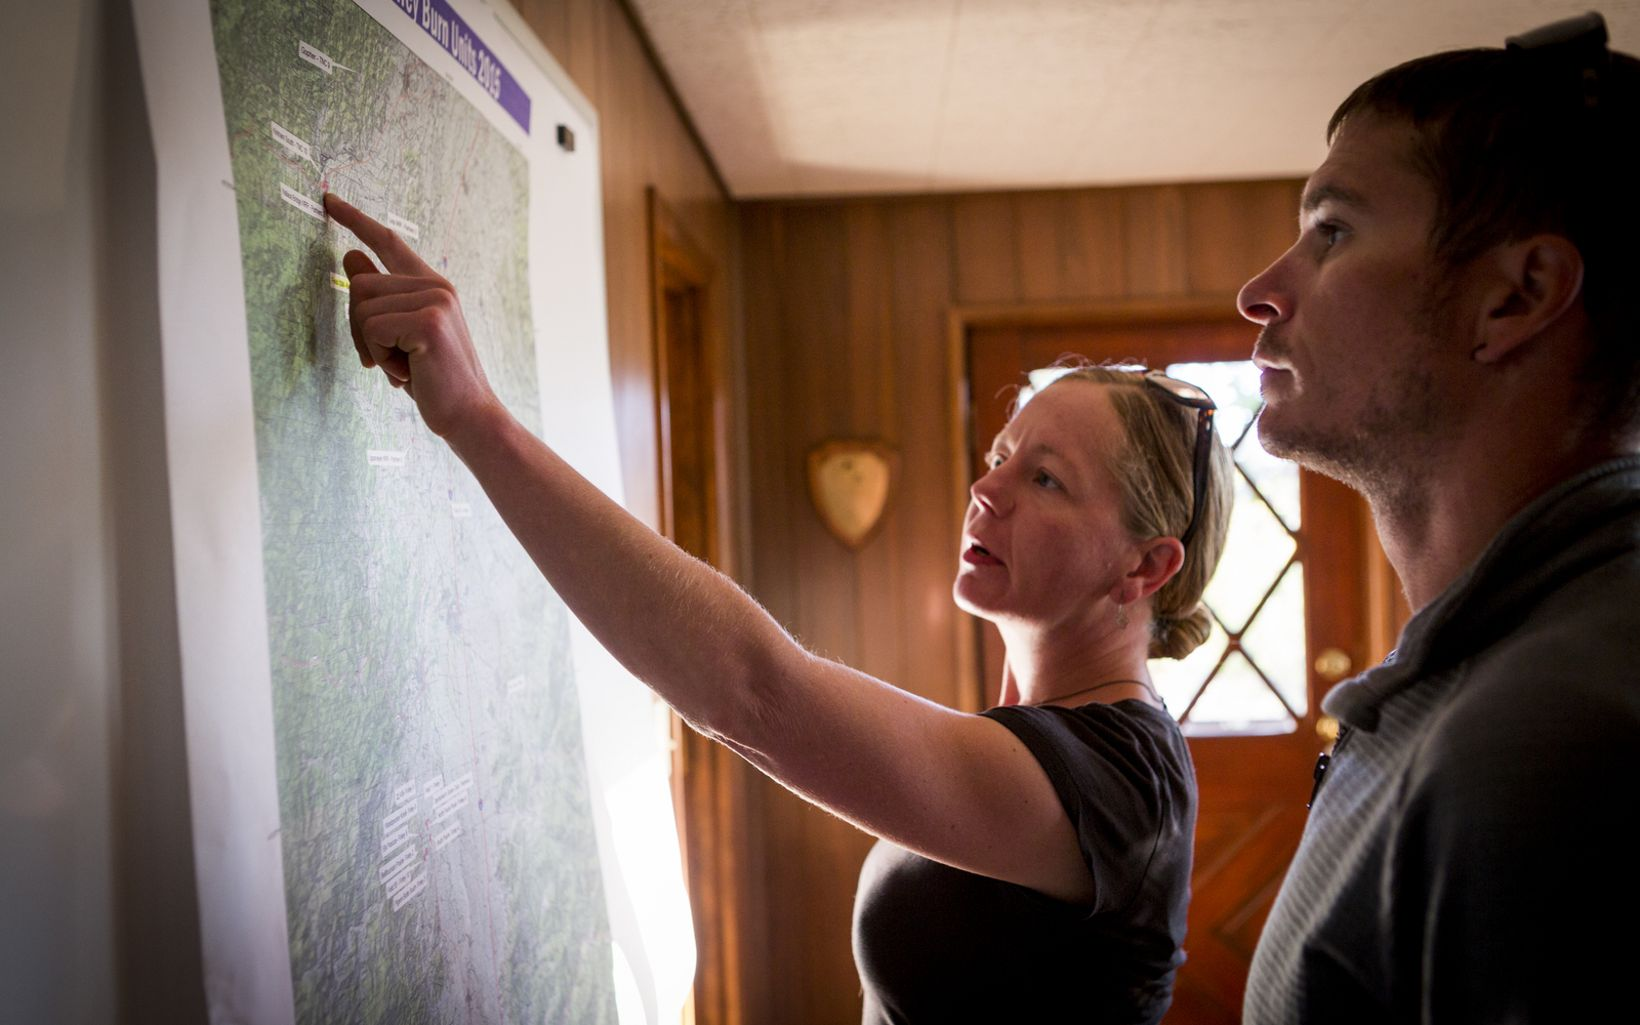 (ALL INTERNAL RIGHTS, LIMITED EXTERNAL RIGHTS) September 2015. Oregon Fire Manager Amanda Stamper and Module Leader Jeff Crandall planning a controlled burn on William L. Finley National Wildlife Reserve in Oregon. In October 2015, The Nature Conservancy's Southern Rockies Wildland Fire Module traveled to the Willamette Valley in Oregon for three weeks to help the Oregon chaper and other local stakeholders including US Fish & Wildlife, US Forest Service, and BLM with prescribed burns of the grassland prairies and oak savannas. Burns ranged from